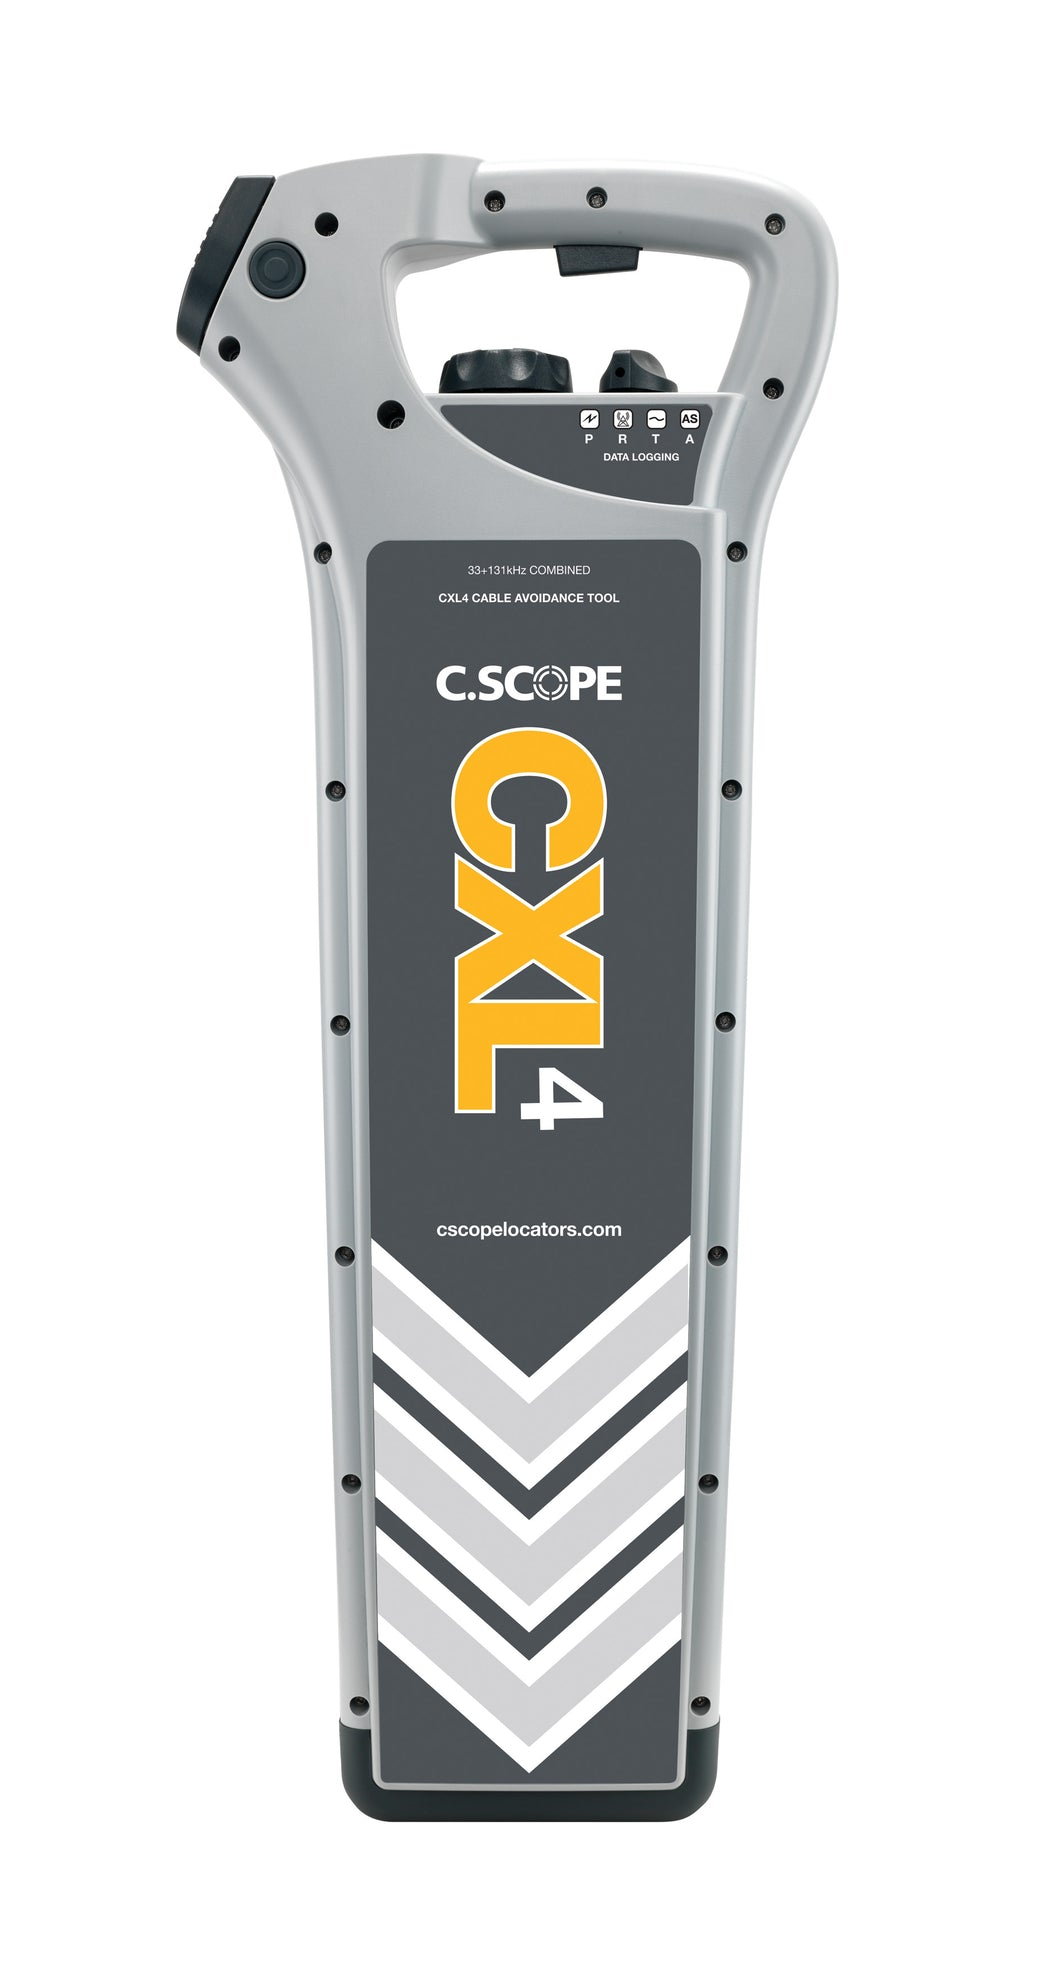 C.SCOPE CXL4 Data Logging Cable Avoidance Tool CXL4CAT-D